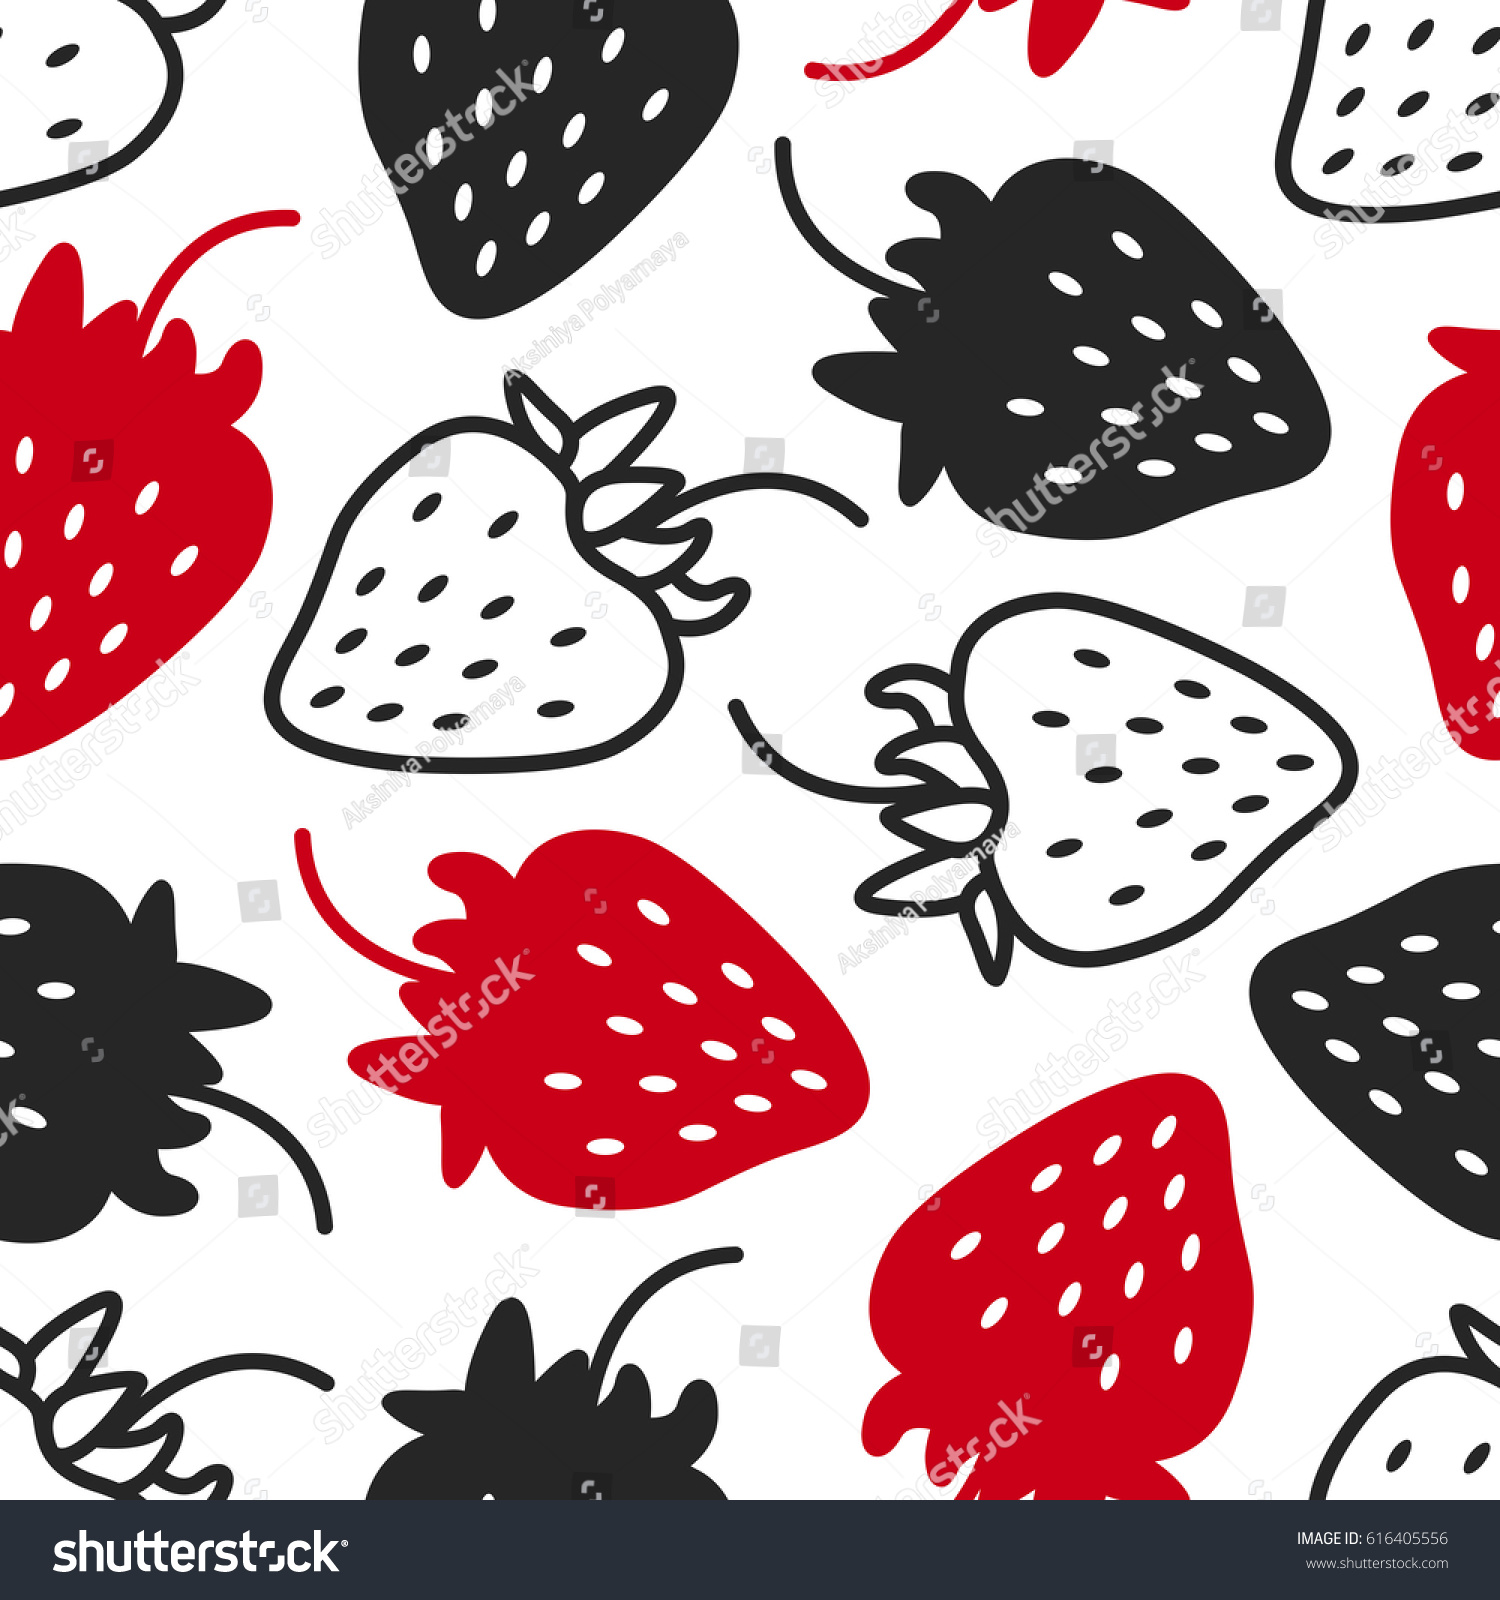 Seamless Pattern Strawberries Contrast Black White Stock Vector ... for Clipart Strawberry Black And White  299kxo